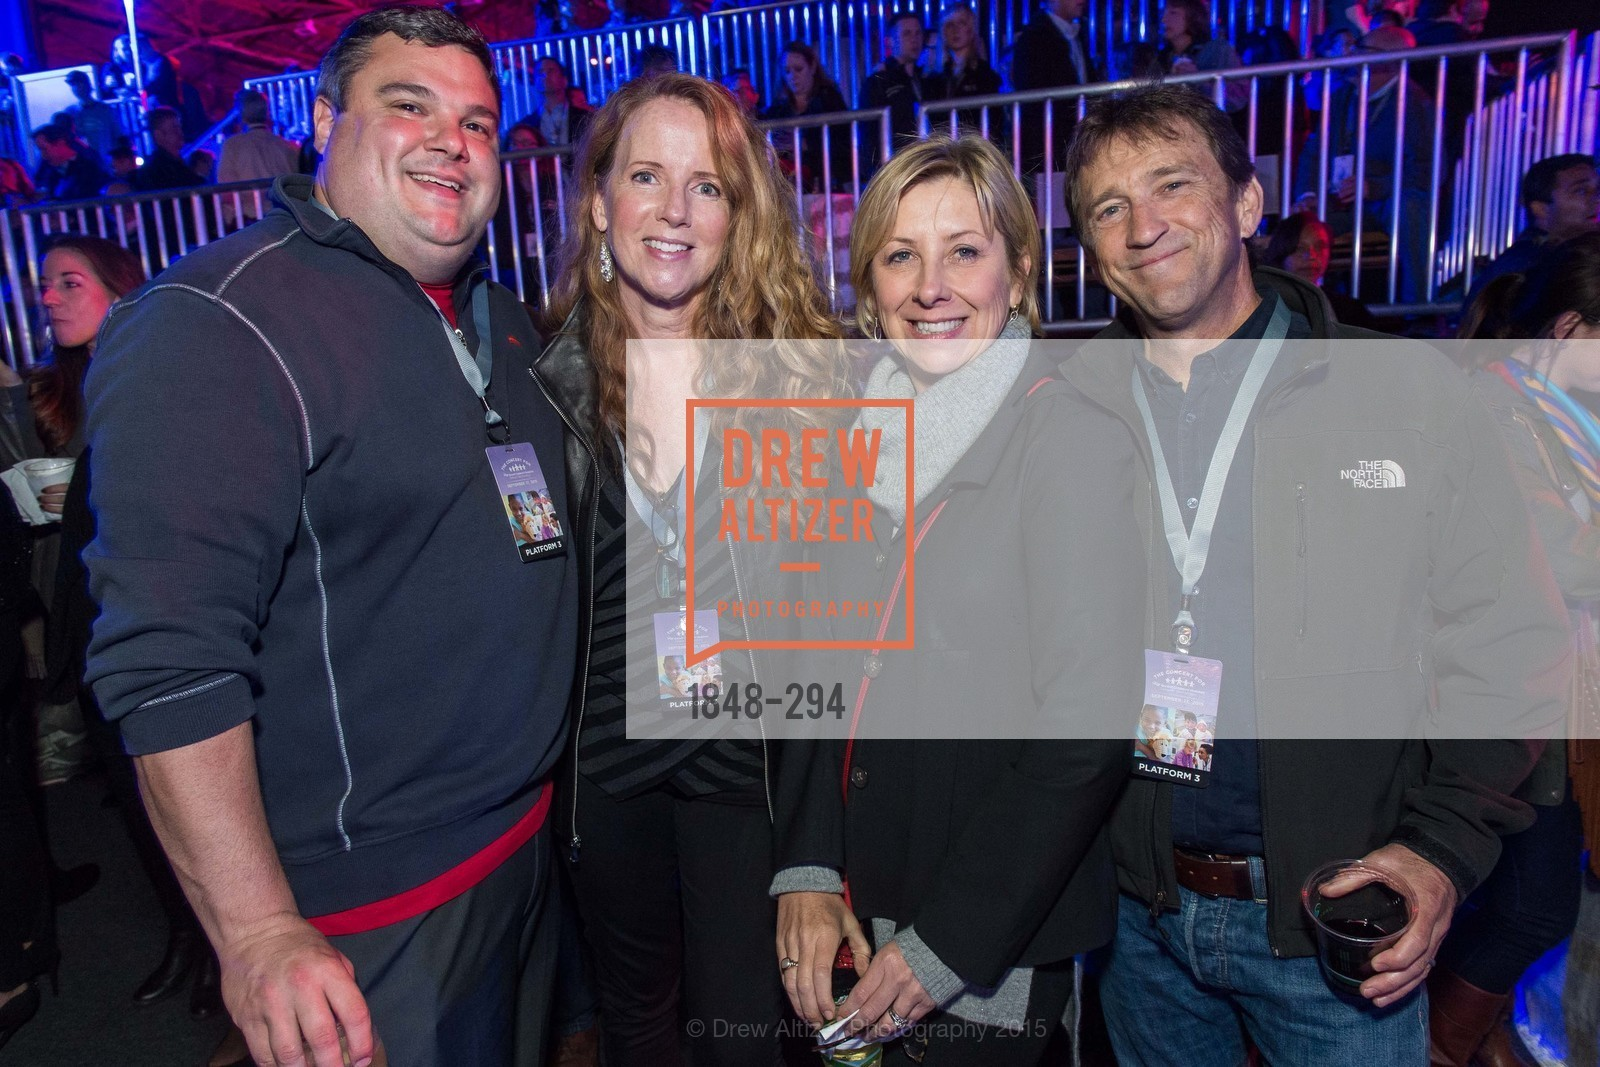 Kathy Muldany, Jennifer Reddington, George Tomsville, The Concert For UCSF Benioff Children's Hospital, Pier 70, September 17th, 2015,Drew Altizer, Drew Altizer Photography, full-service agency, private events, San Francisco photographer, photographer california